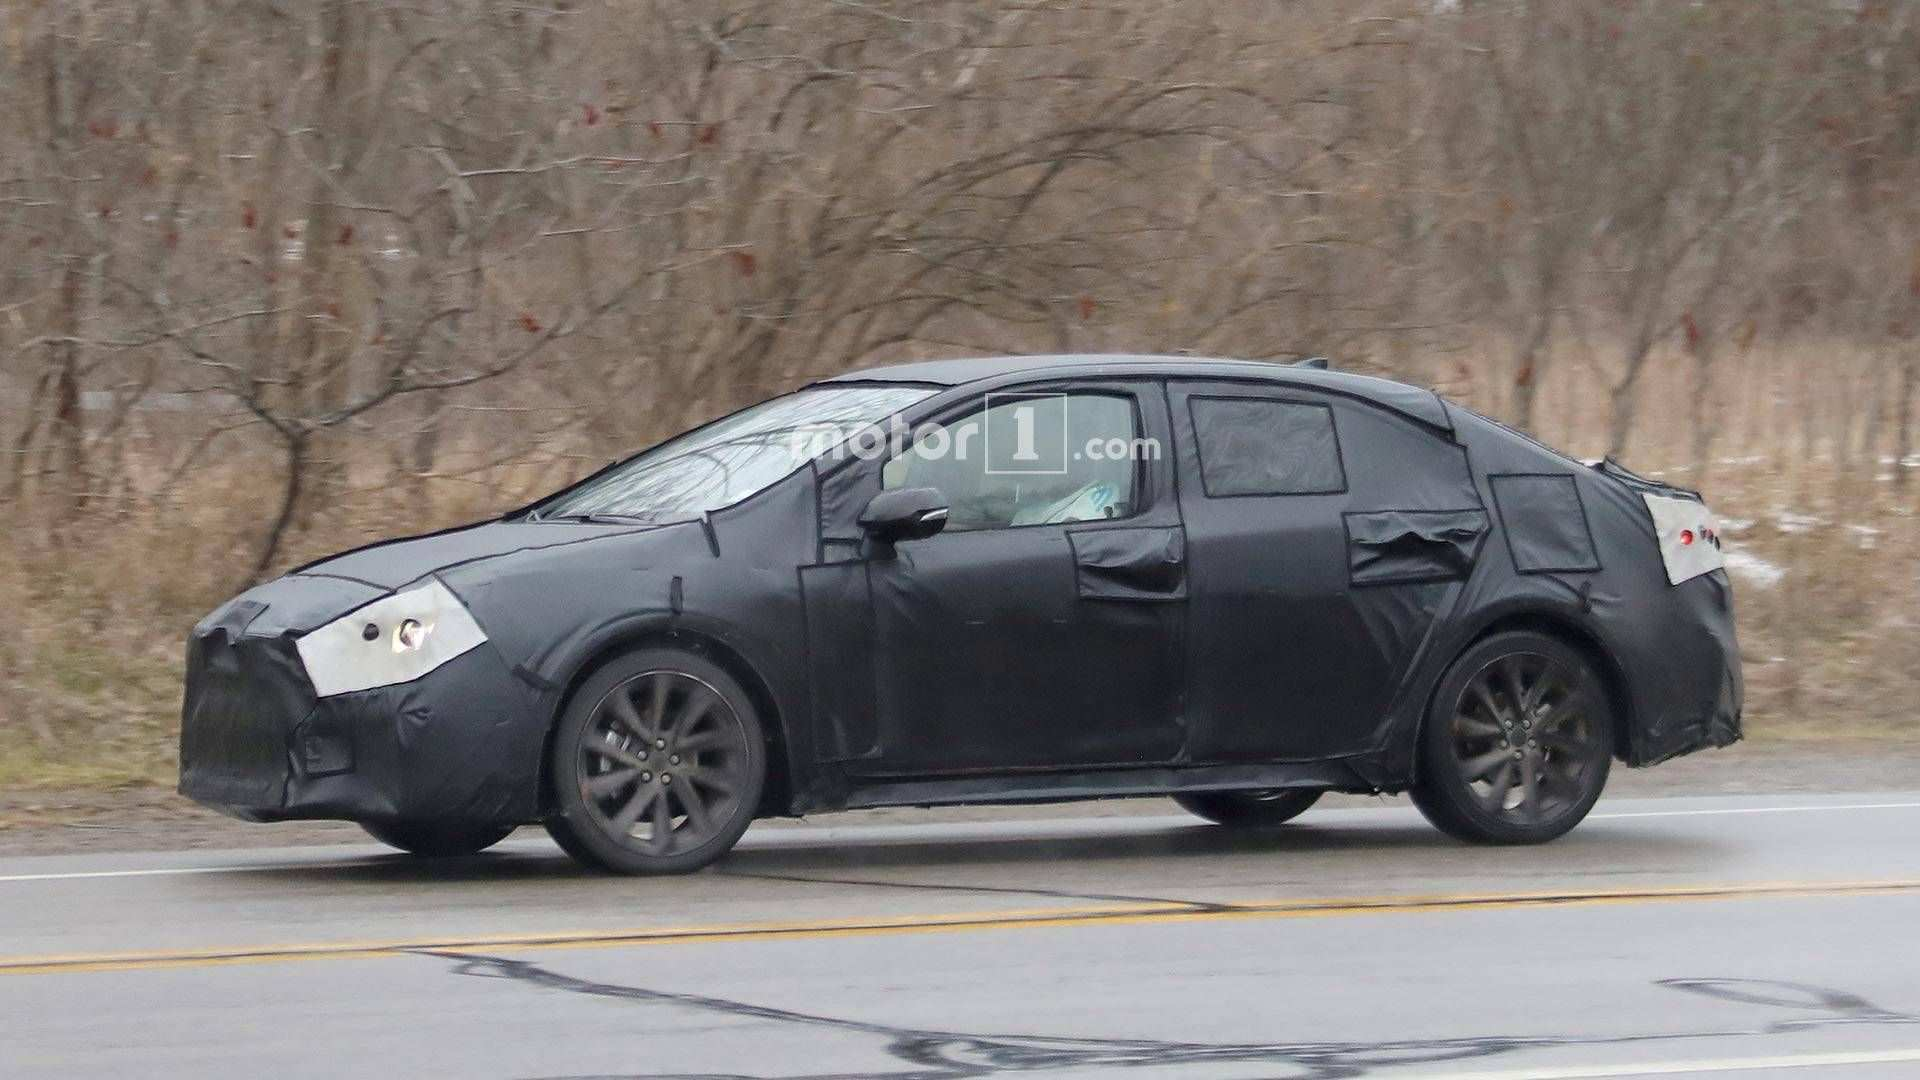 23 Gallery of 2020 New Toyota Avensis Spy Shots Speed Test for 2020 New Toyota Avensis Spy Shots